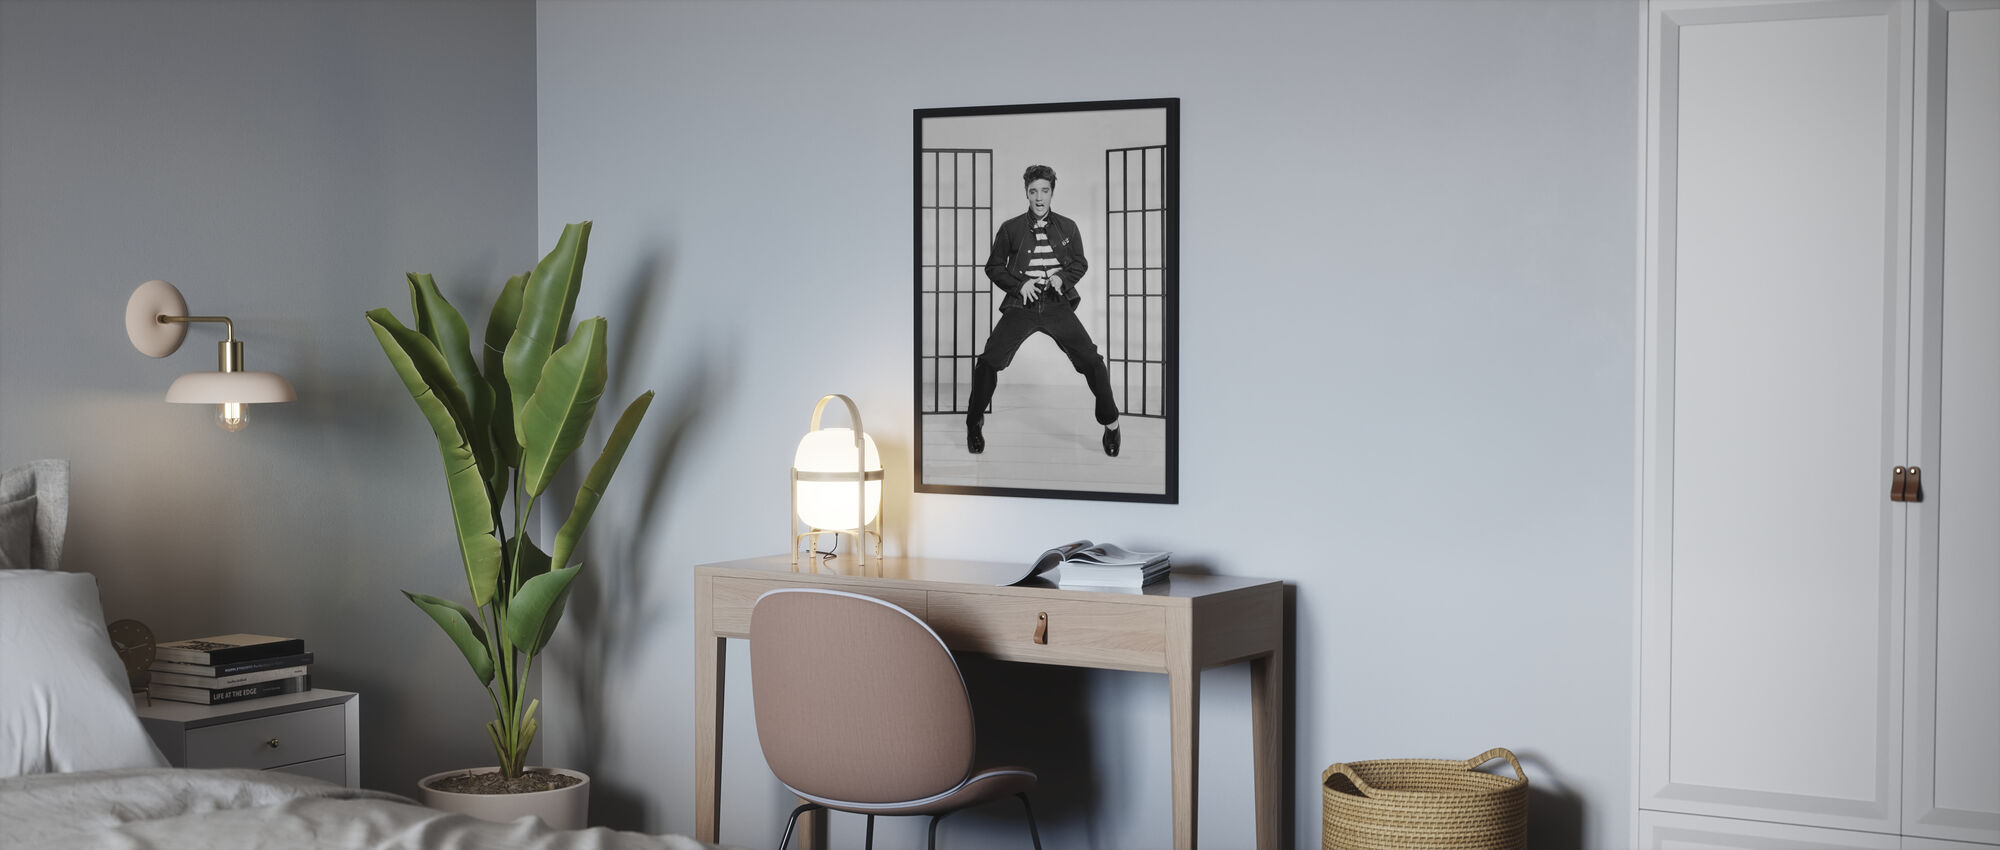 Jailhouse Rock 2 - Framed print - Bedroom